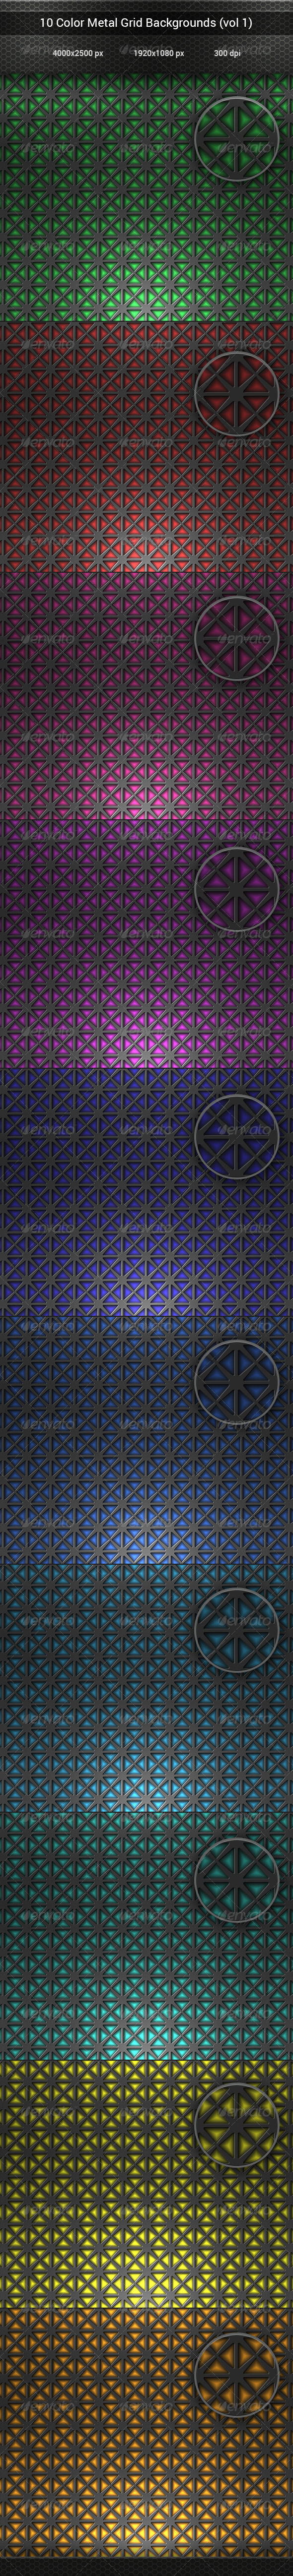 GraphicRiver 10 Color Metal Grid Backgrounds vol 1 8142216